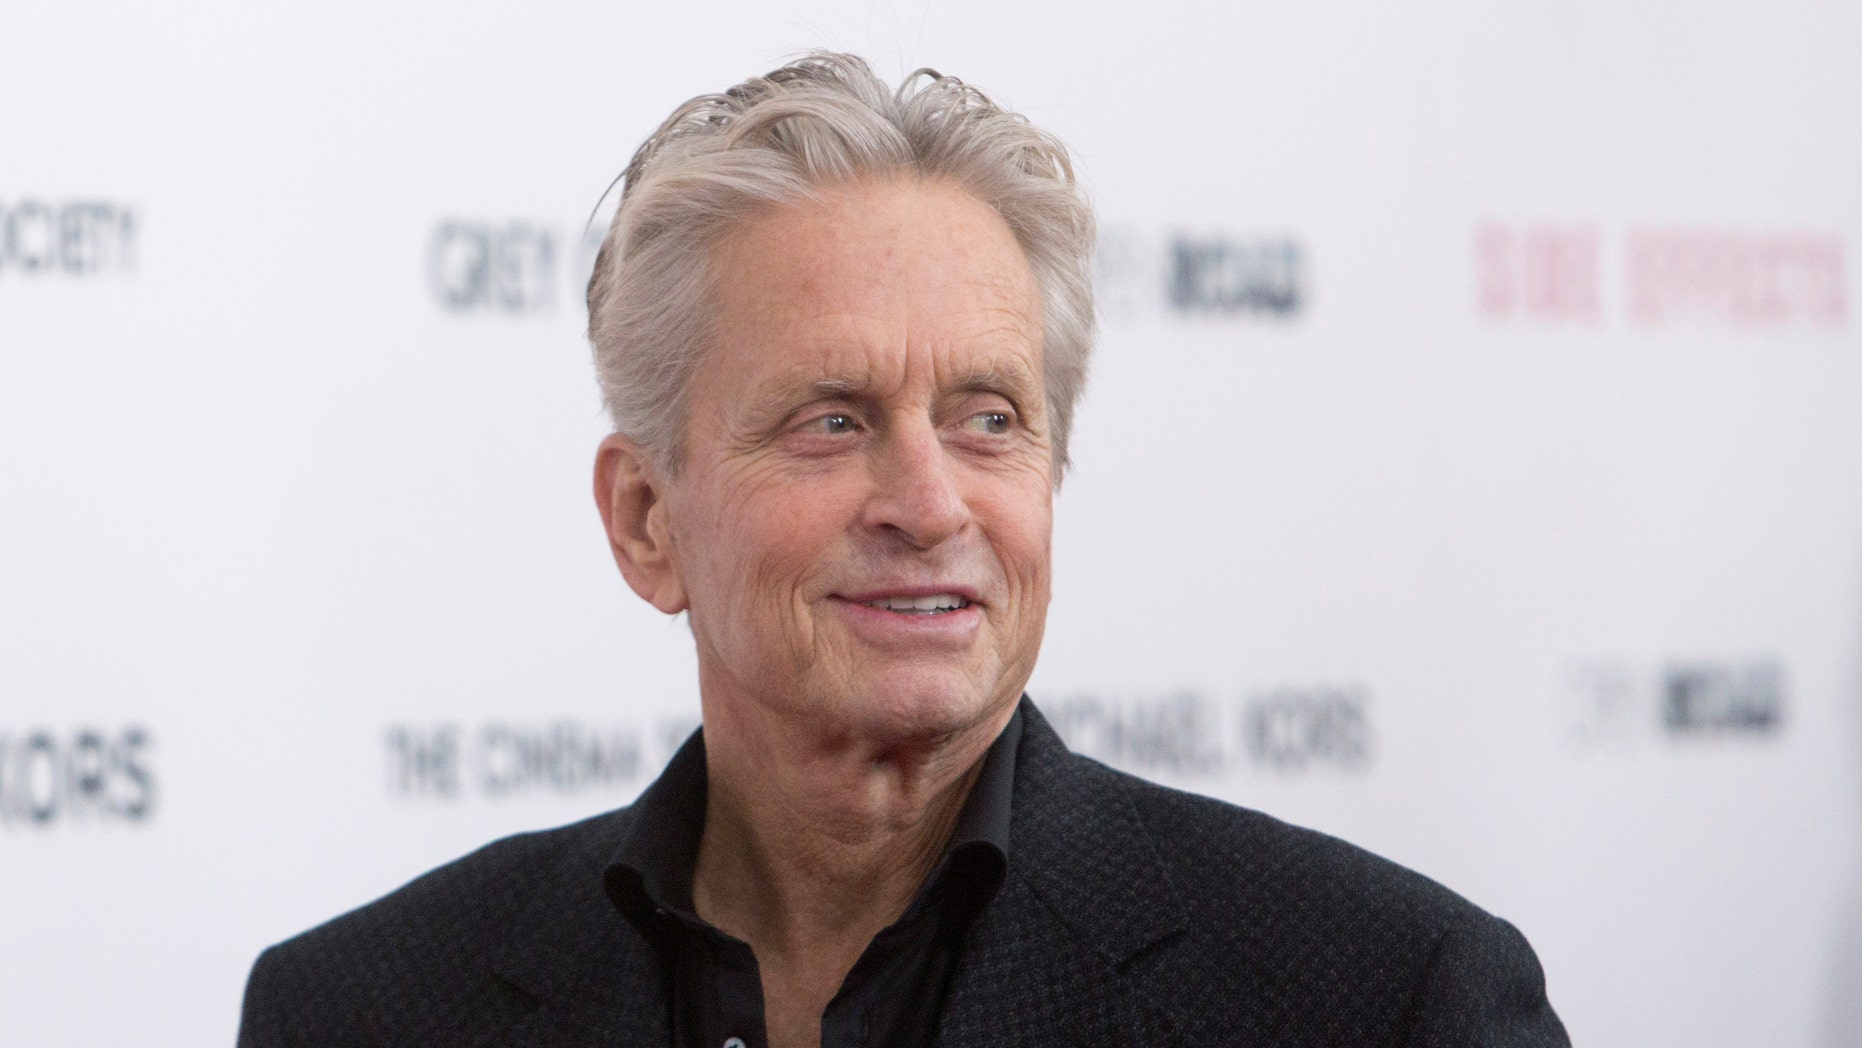 """Actor Michael Douglas attends the premiere of the film """"Side Effects"""" in New York January 31, 2013. REUTERS/Andrew Kelly (UNITED STATES - Tags: ENTERTAINMENT) - RTR3D7K3"""